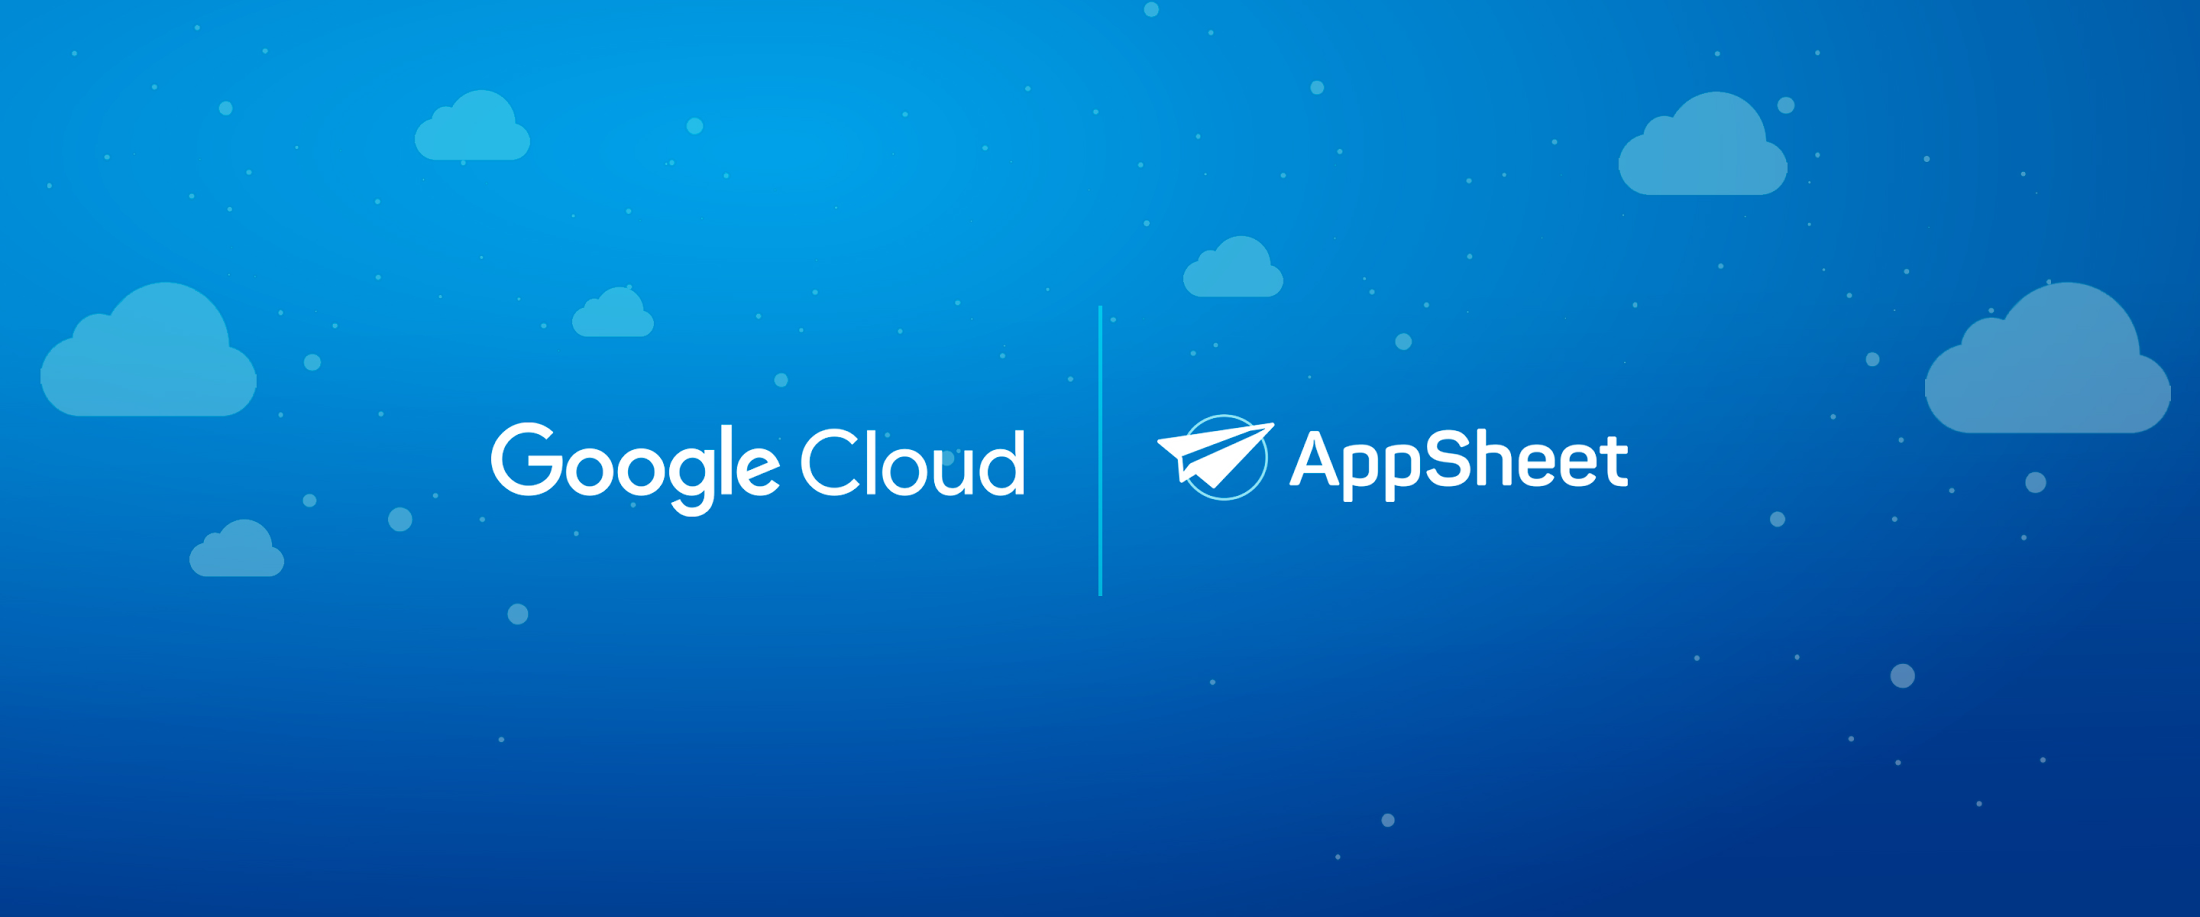 Google acquired AppSheet